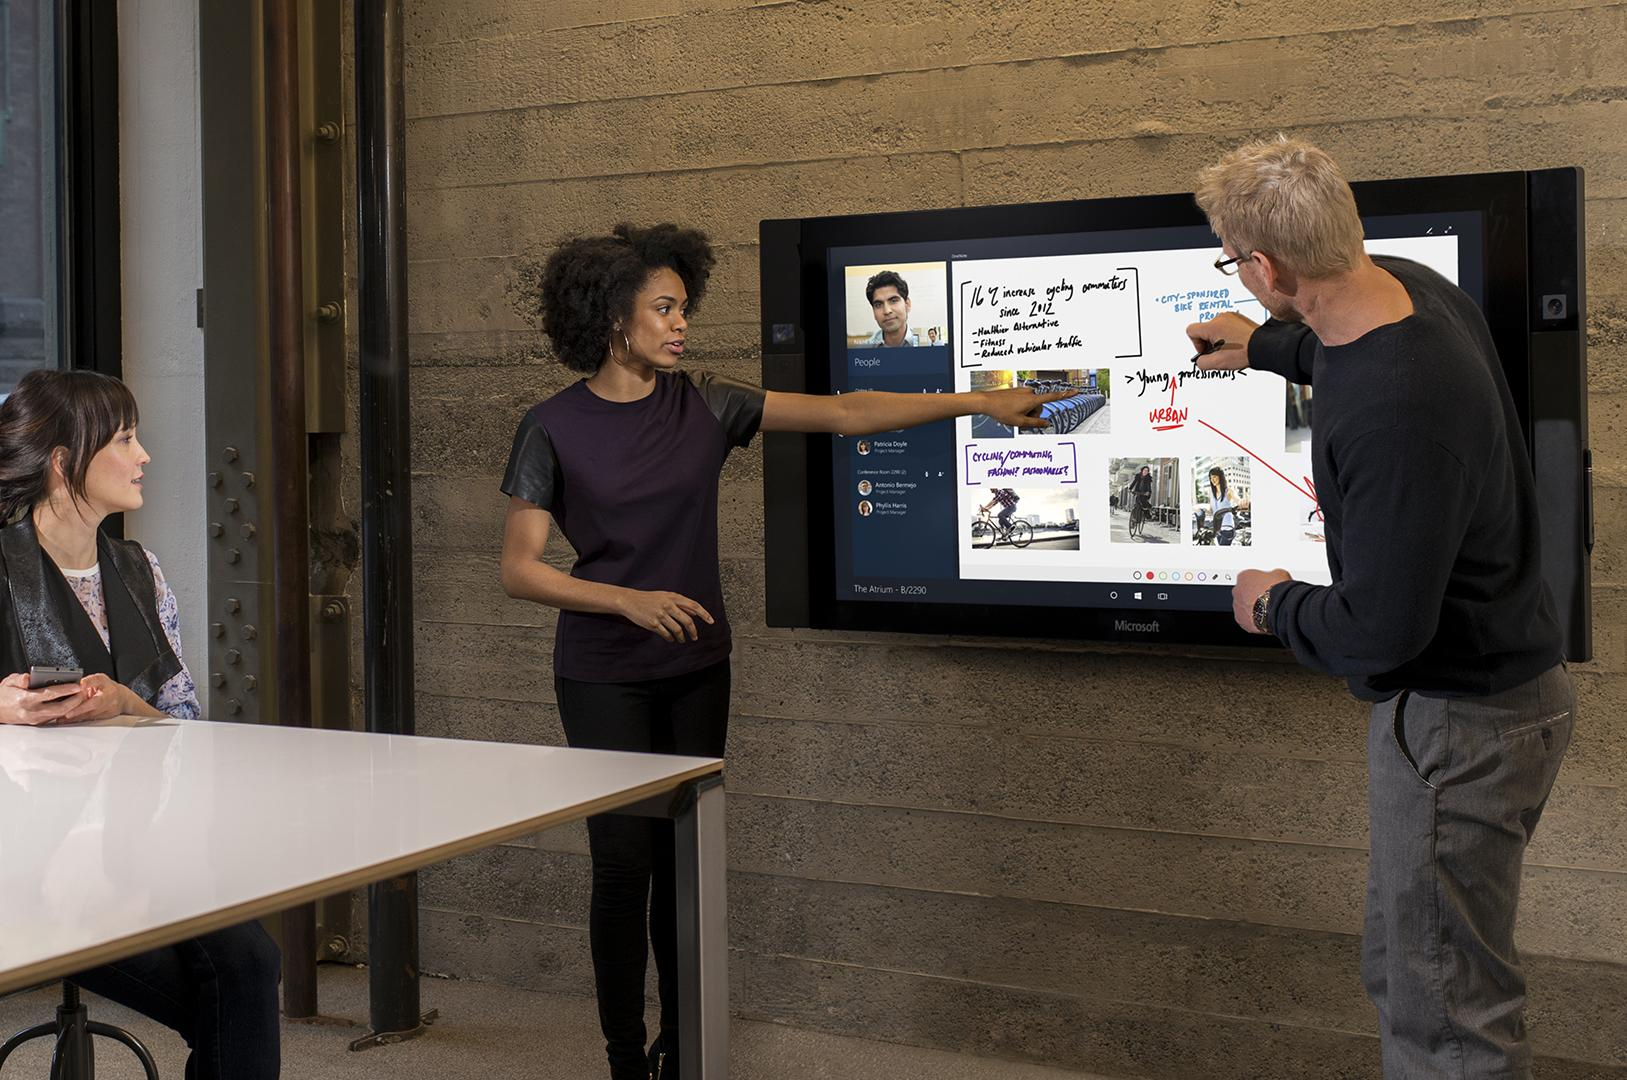 Microsoft to hike Surface Hub pricing ahead of early 2016 release